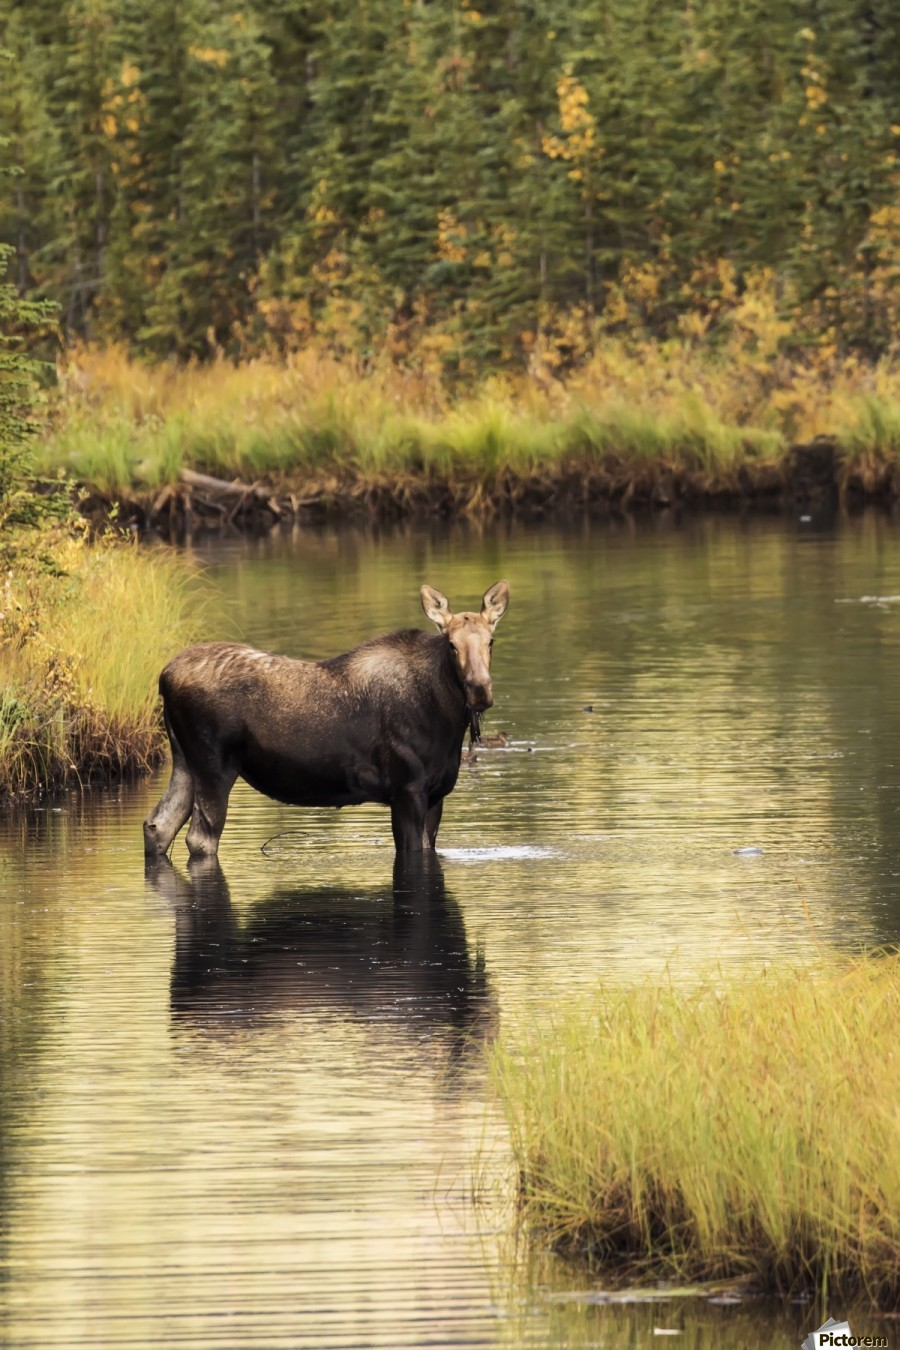 Moose (alces alces) feeding in a shallow pond south of Cantwell, photo taken from Parks Highway common moose habitat; Alaska, United States of America  Print